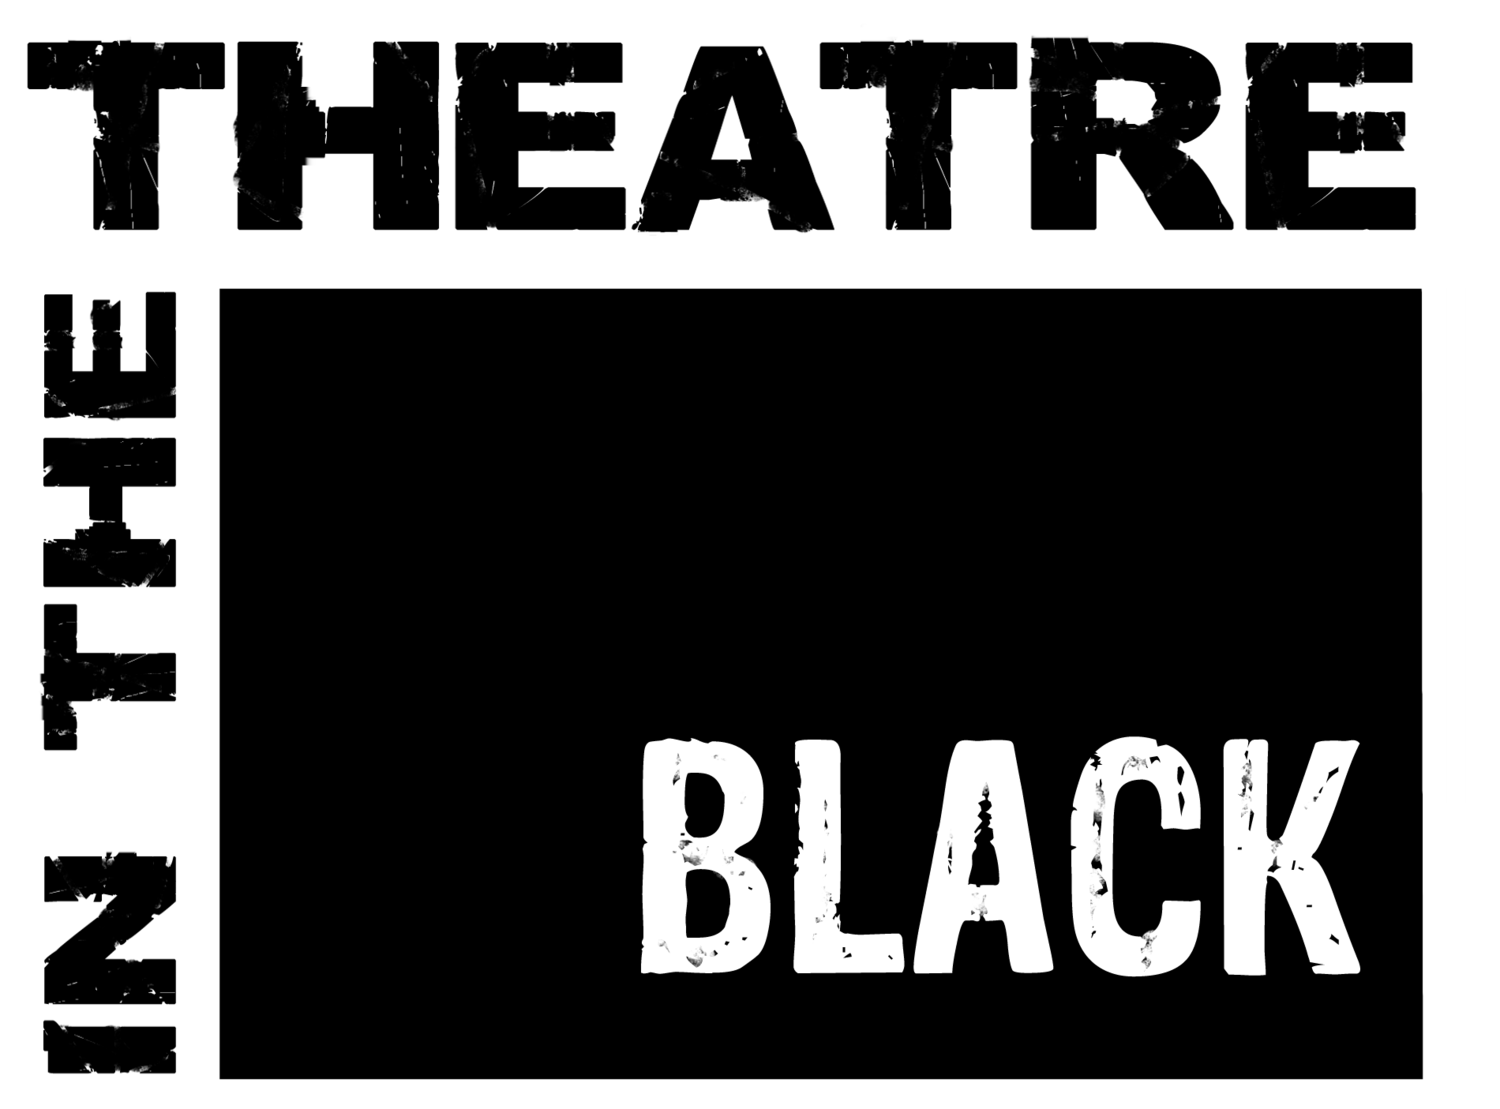 Theatre in the Black